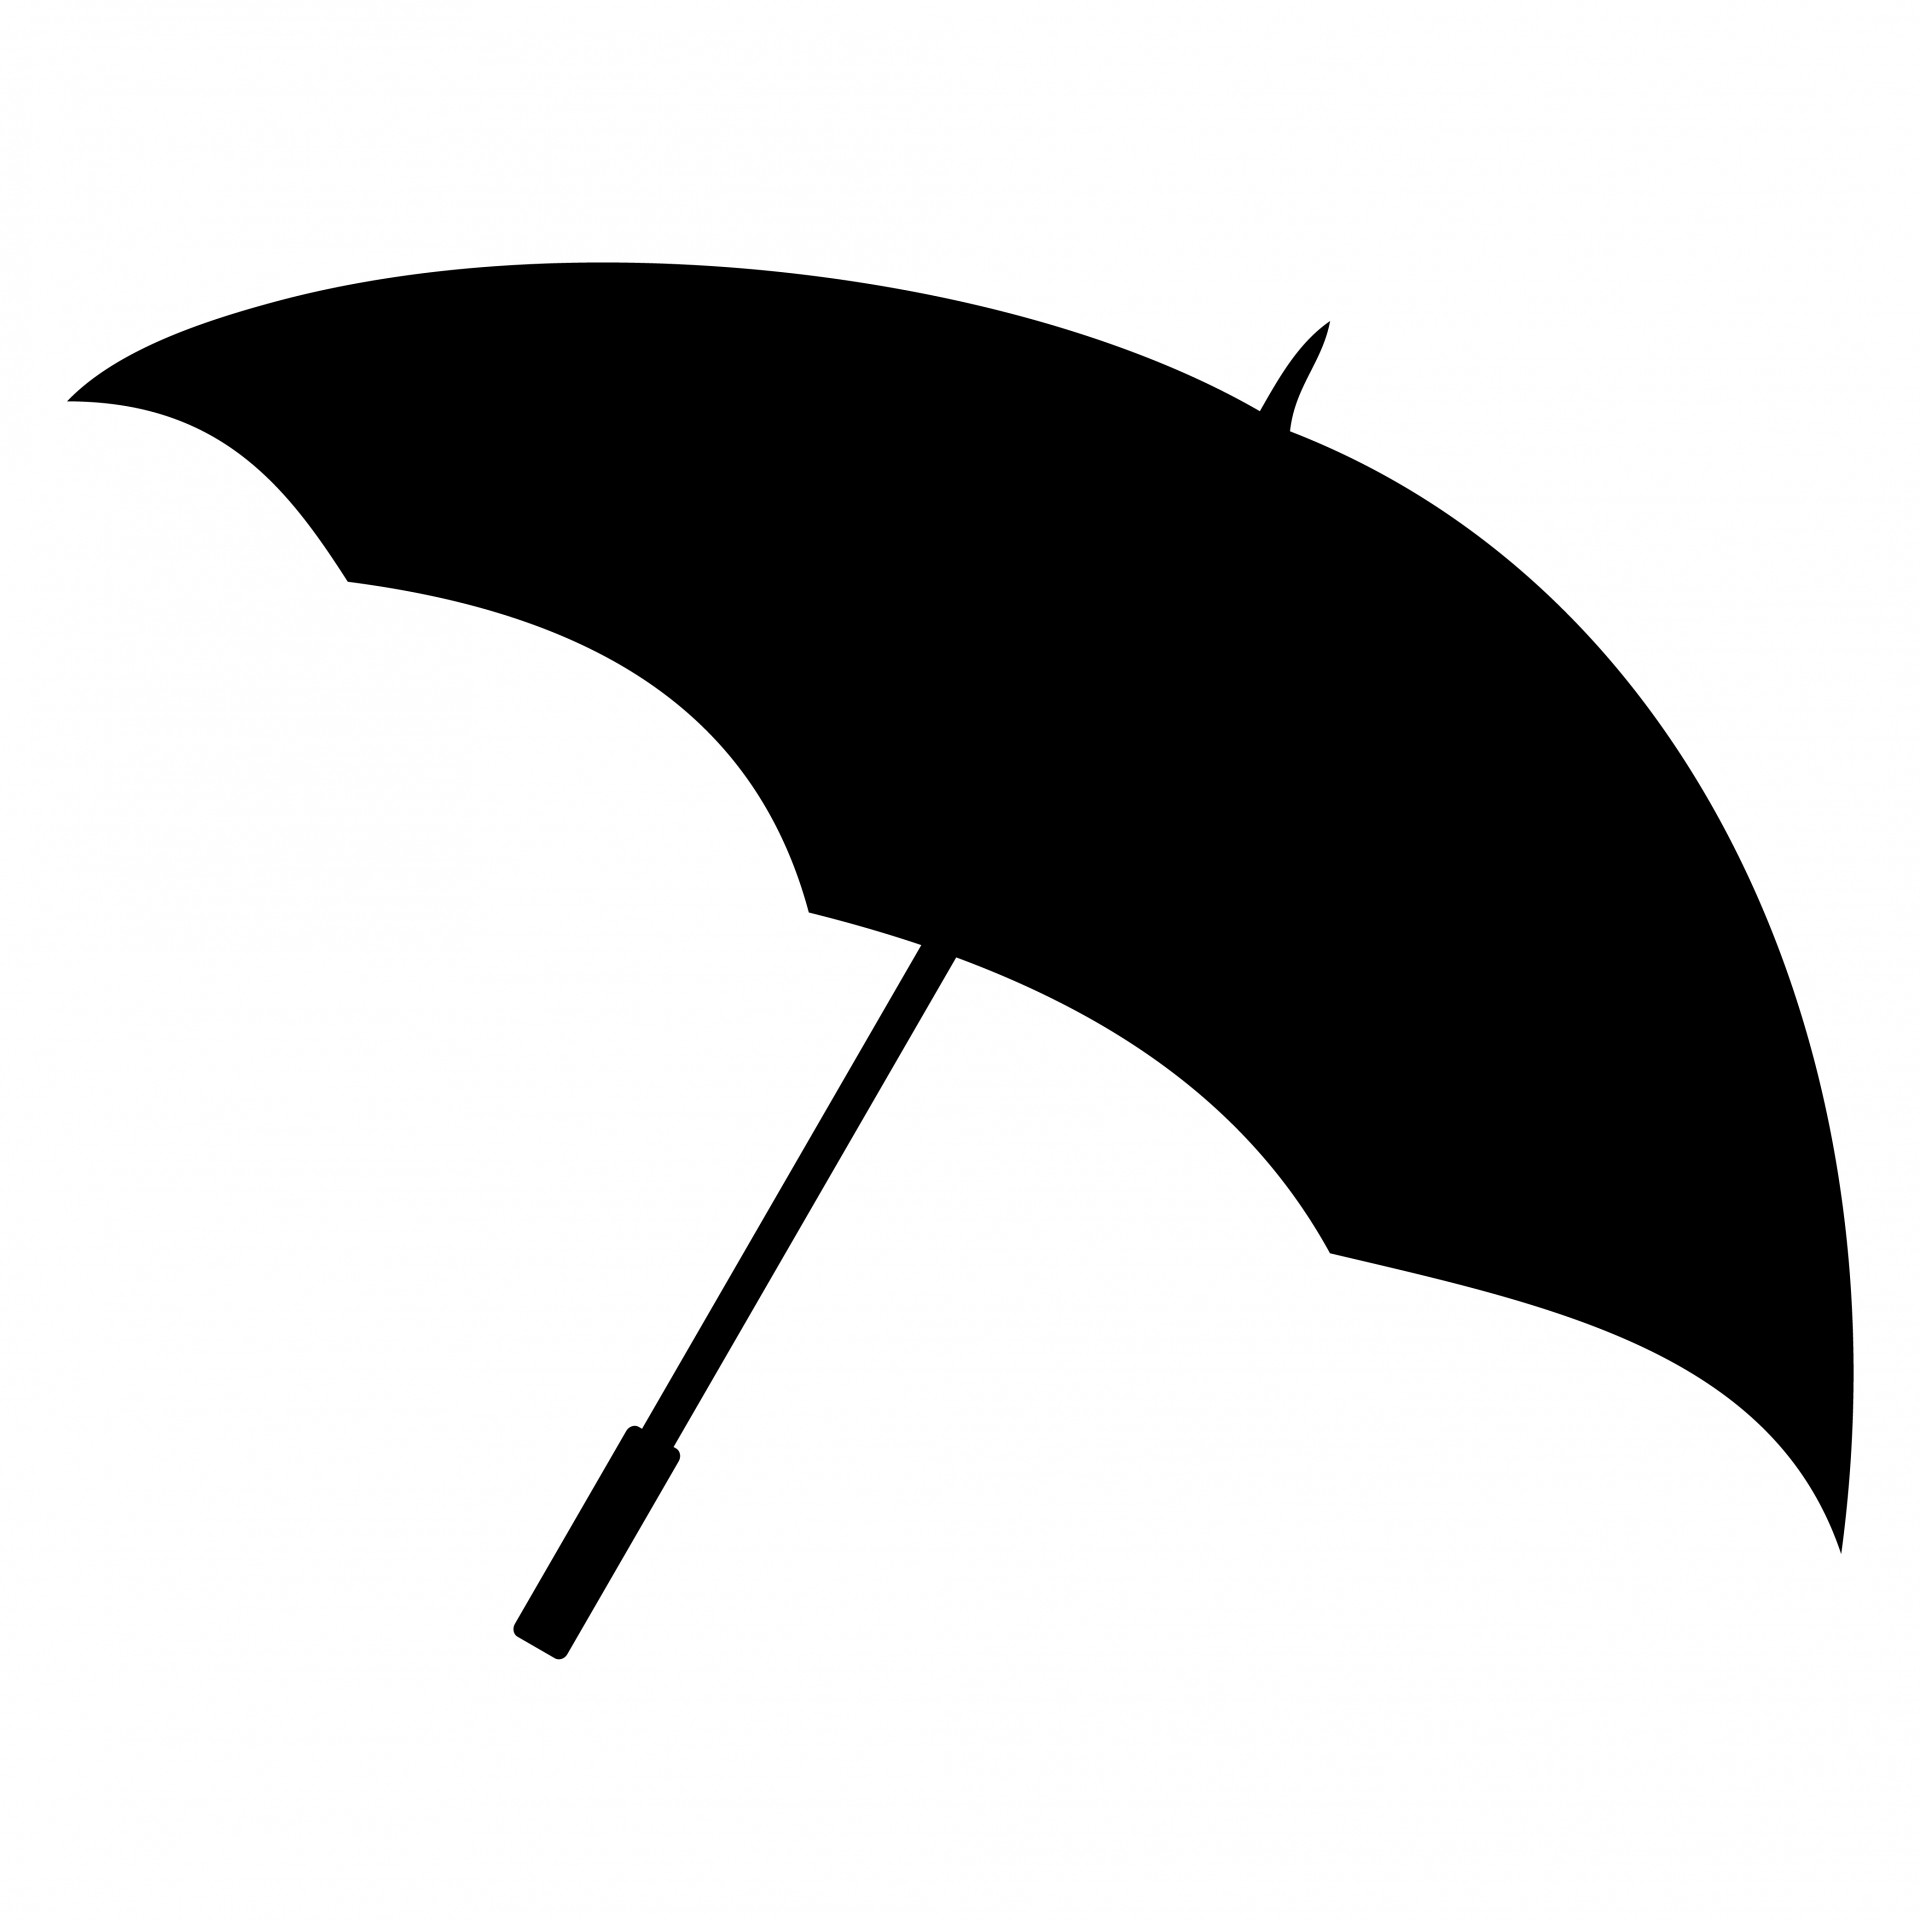 Umbrella clipart #4, Download drawings